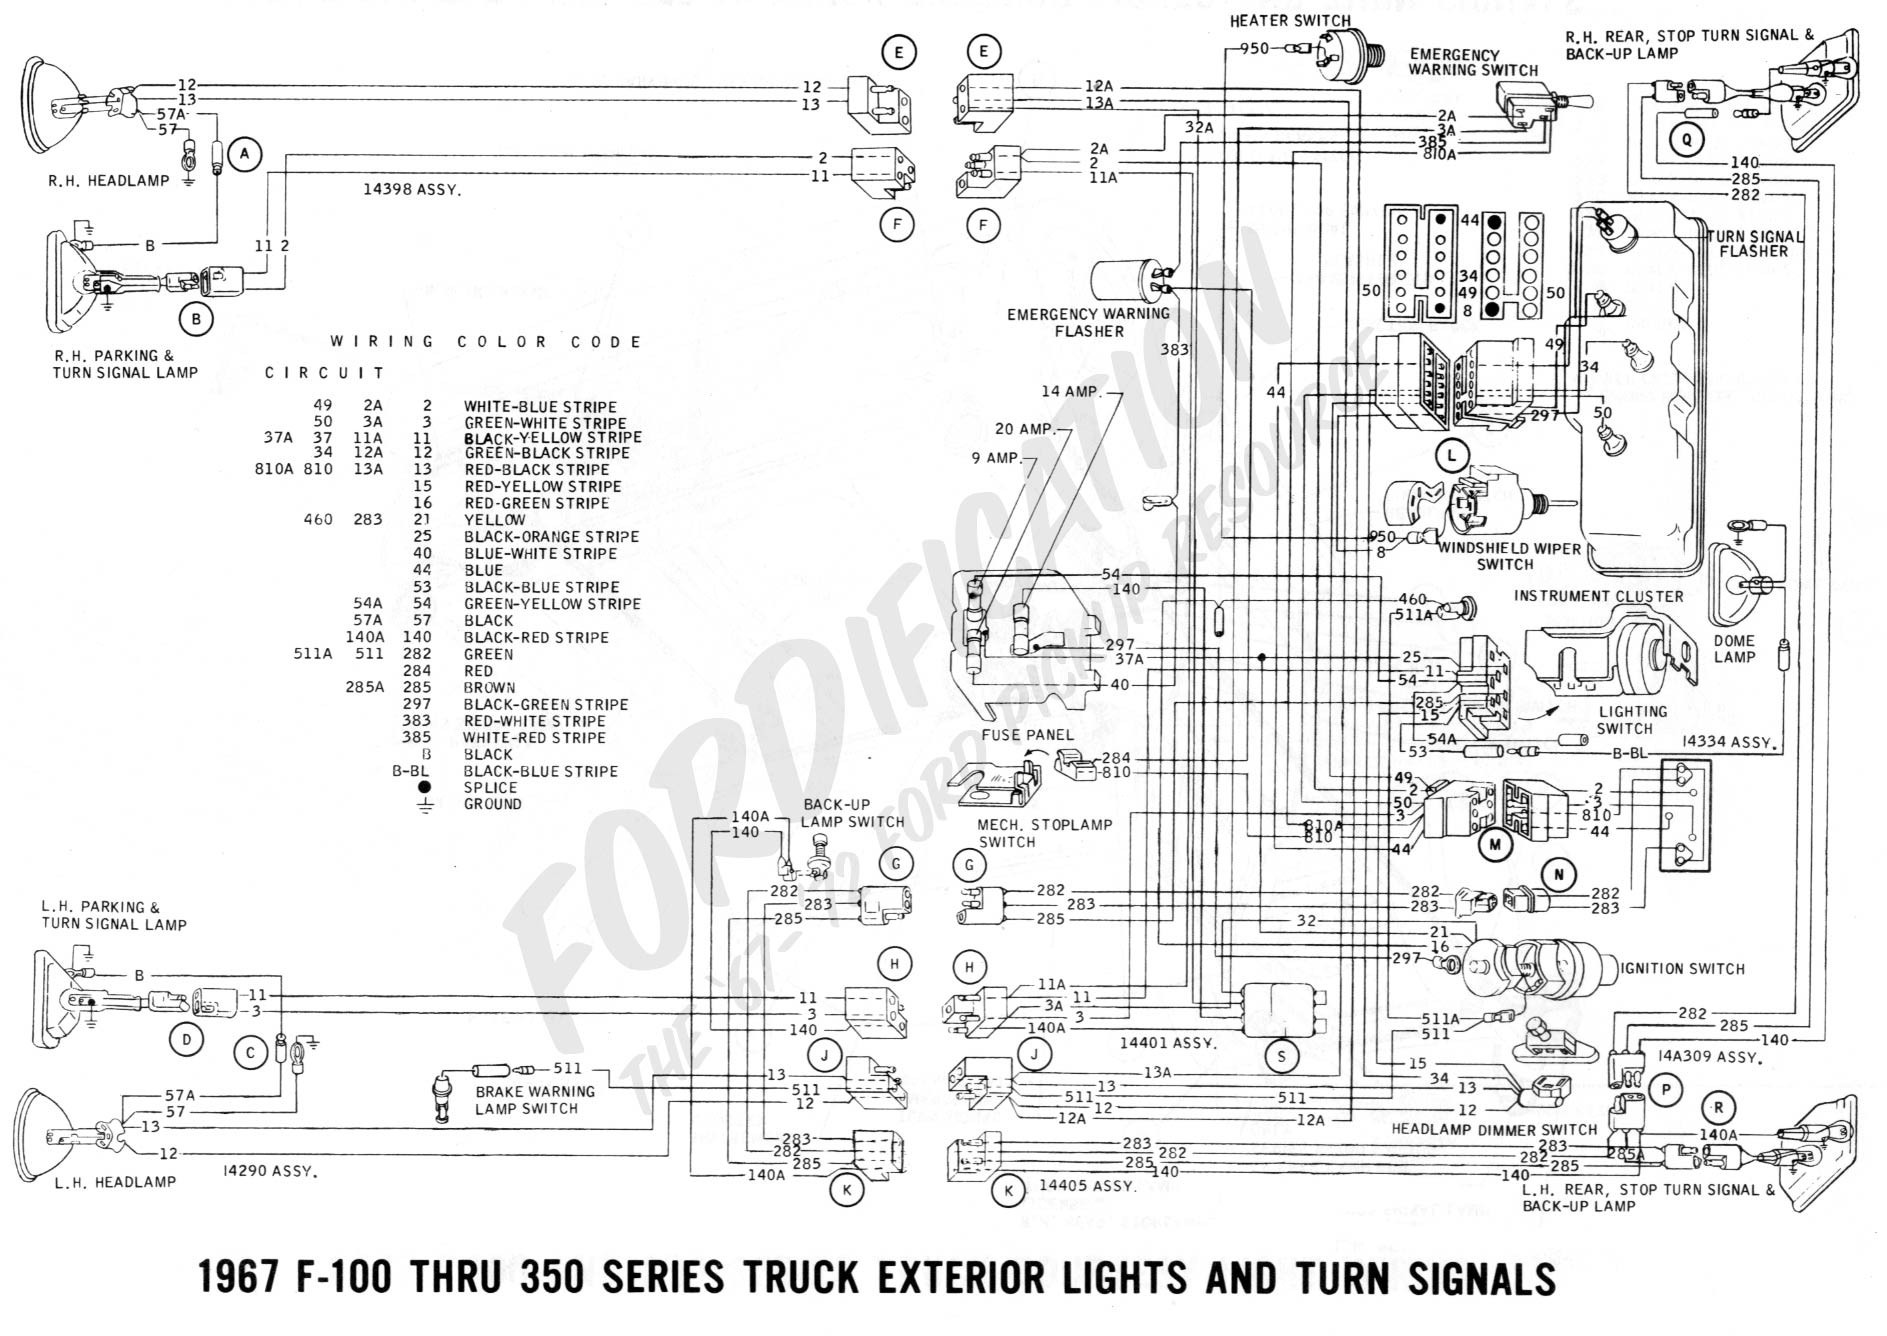 2001 ford Ranger Engine Diagram Luxury ford Ranger Wiring Harness Diagram Diagram Of 2001 ford Ranger Engine Diagram